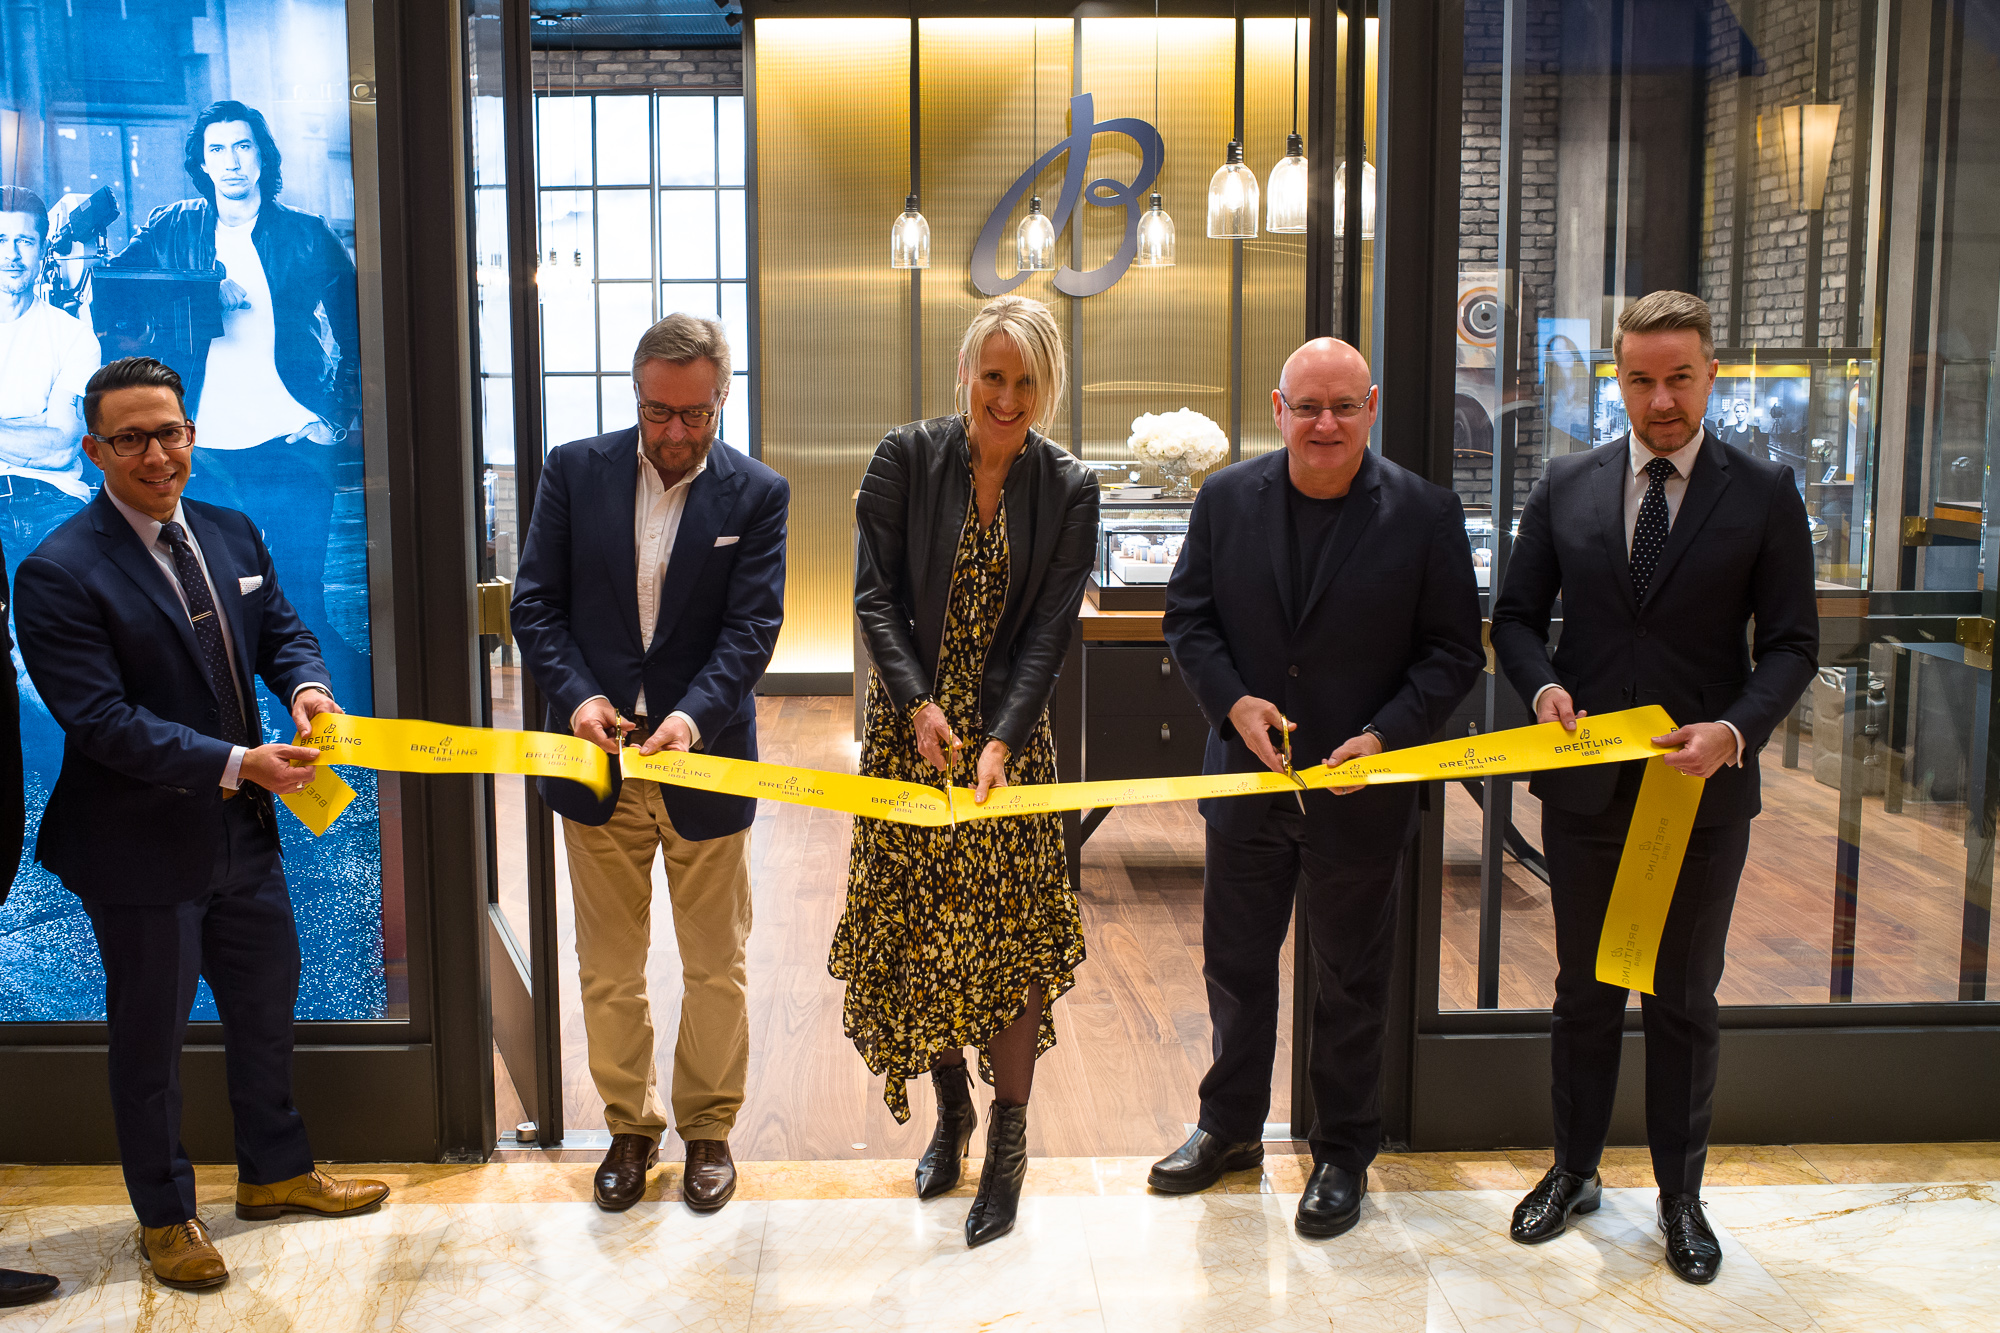 WoS CEO Brian Duffy, Breitling Retail Director Sophie Morice, and Commander Scott Kelly cutting the ribbon at the Esplanade Shops new Breitling Boutique in the Wynn.